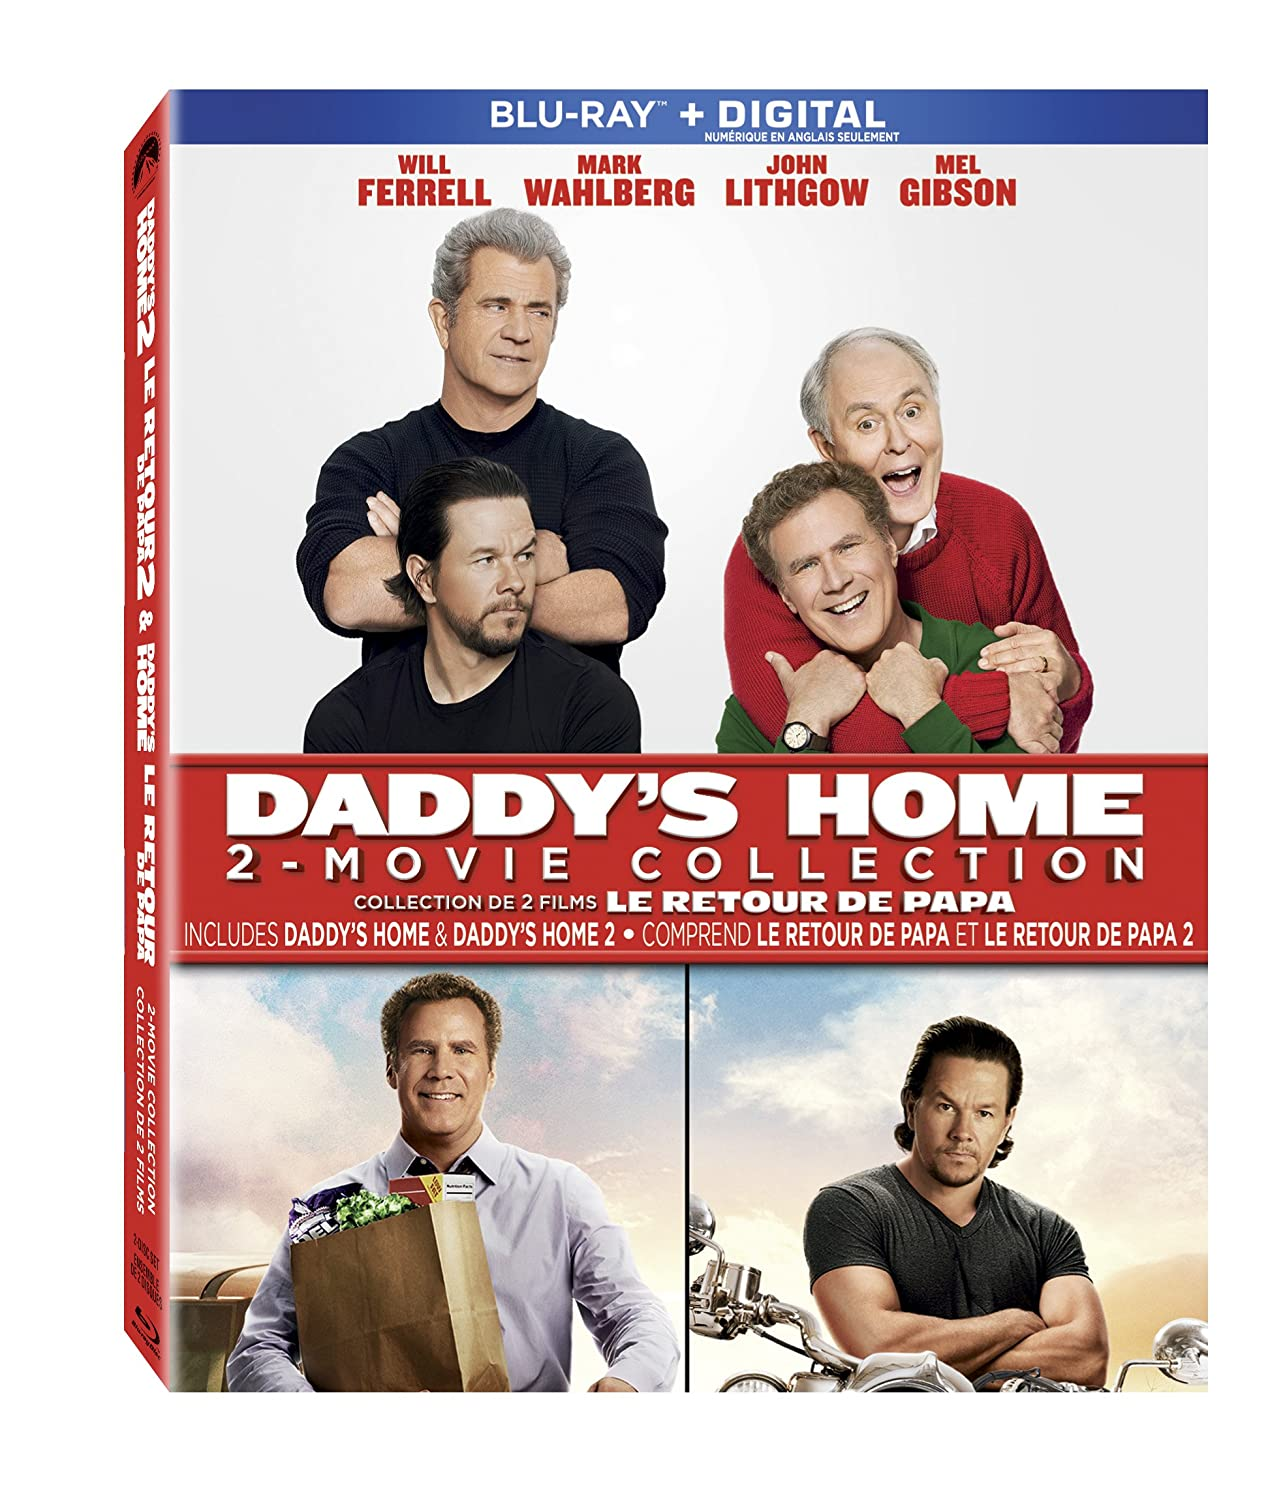 Daddy's Home / Daddy's Home 2 (2-Movie Collection) (Blu-ray)